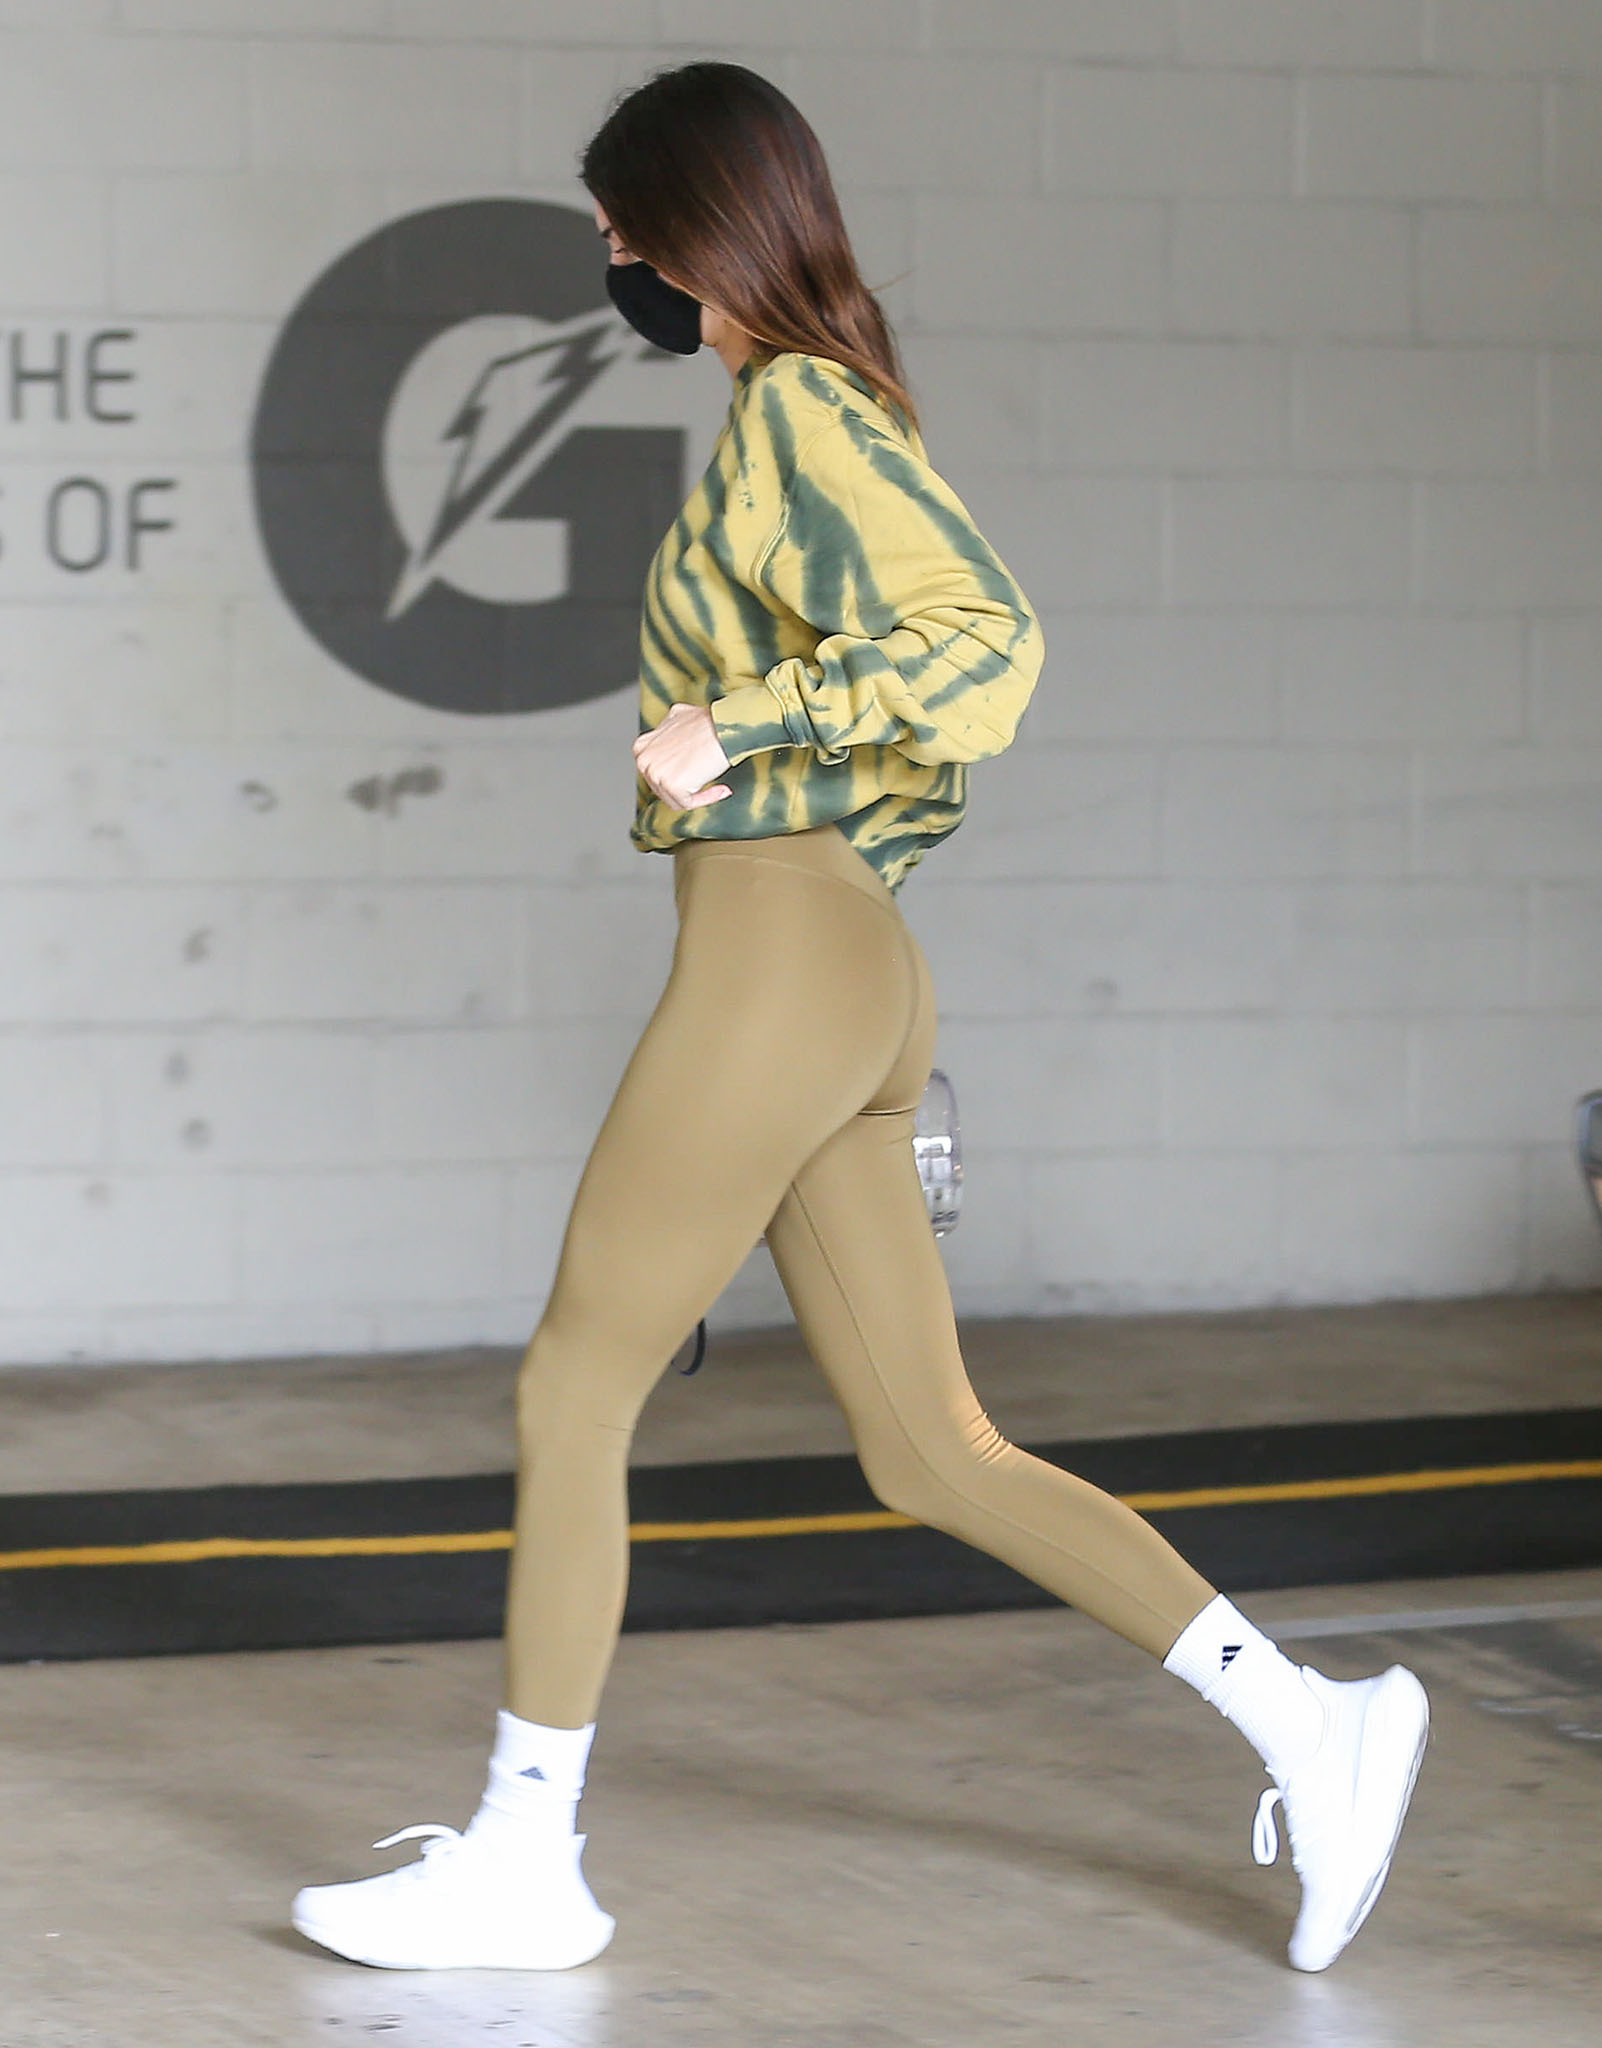 Kendall Jenner wears olive green Alo leggings and a Good American tie-dye sweatshirt to the gym